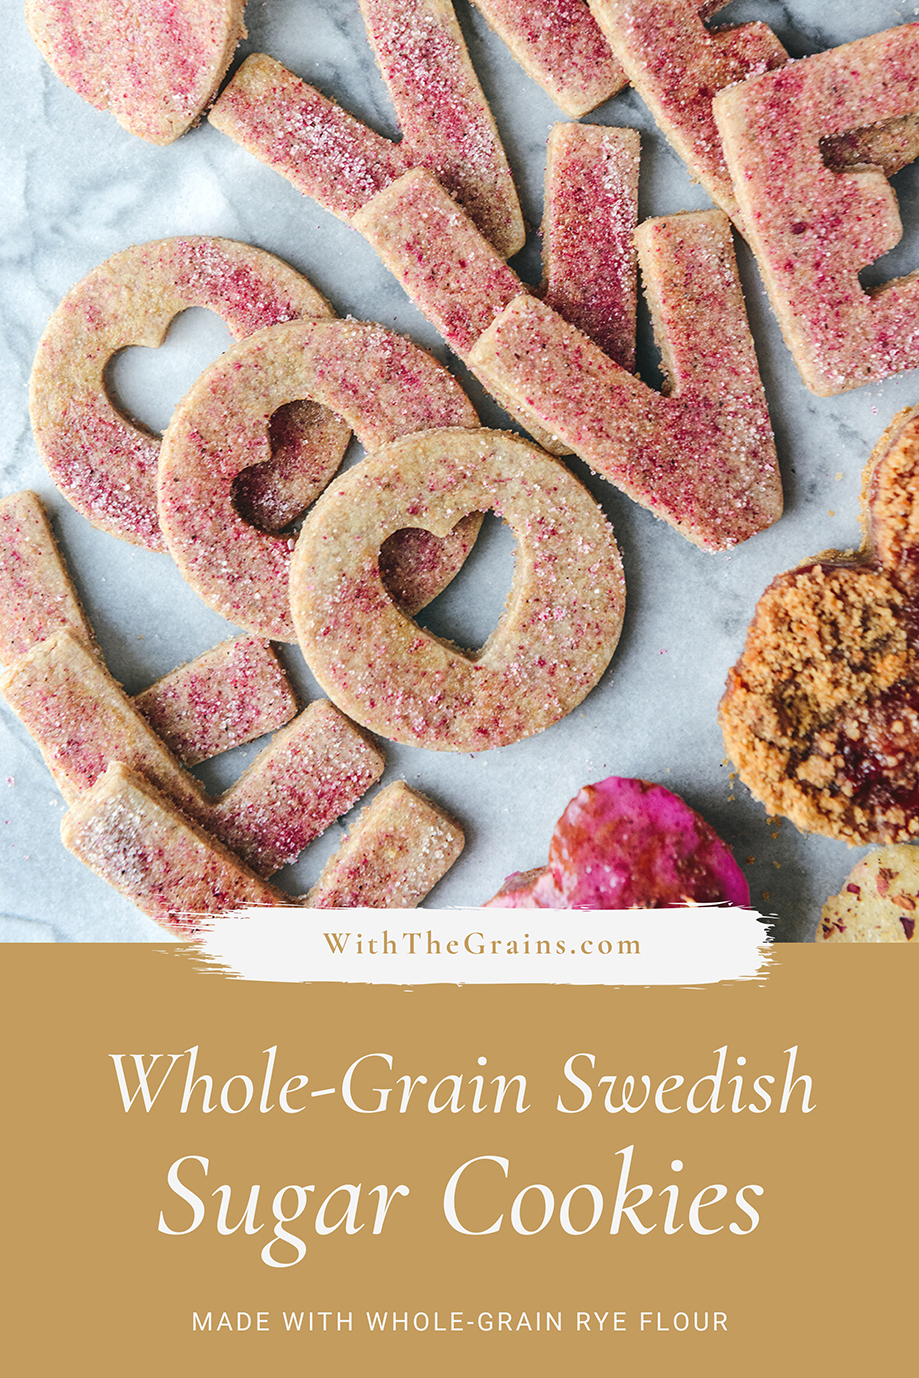 Whole-Grain Swedish Rye Cookies with Pink Pitaya Sugar // www.WithTheGrains.com